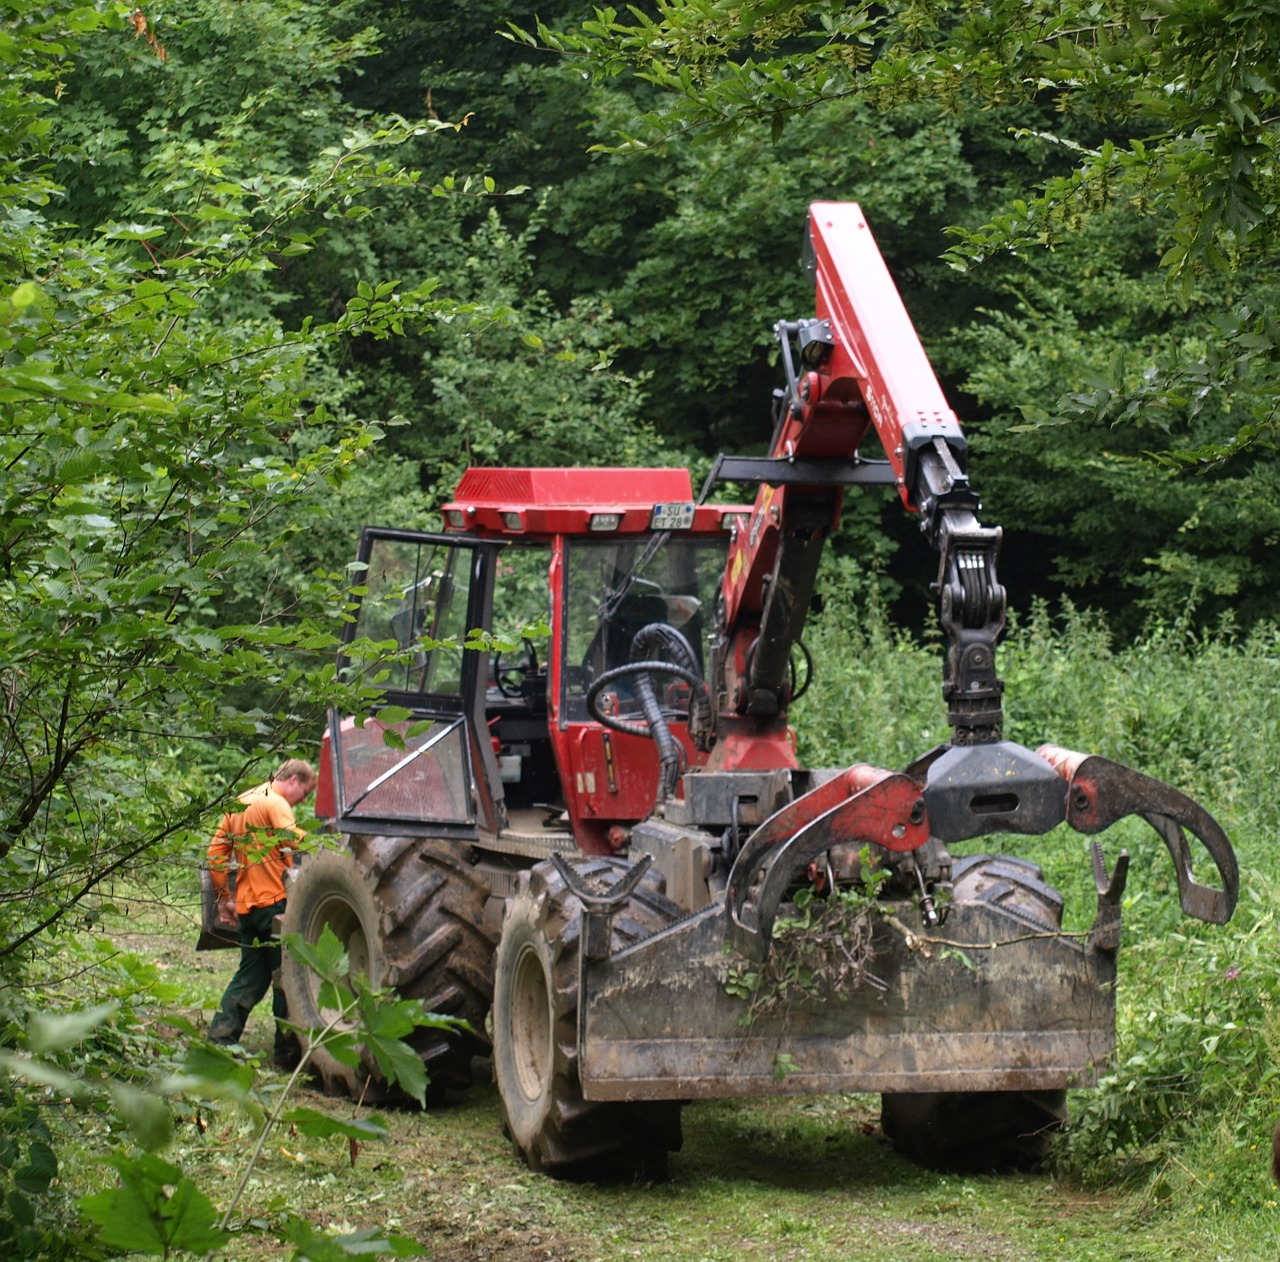 fort bend tug forestry work machine free photo